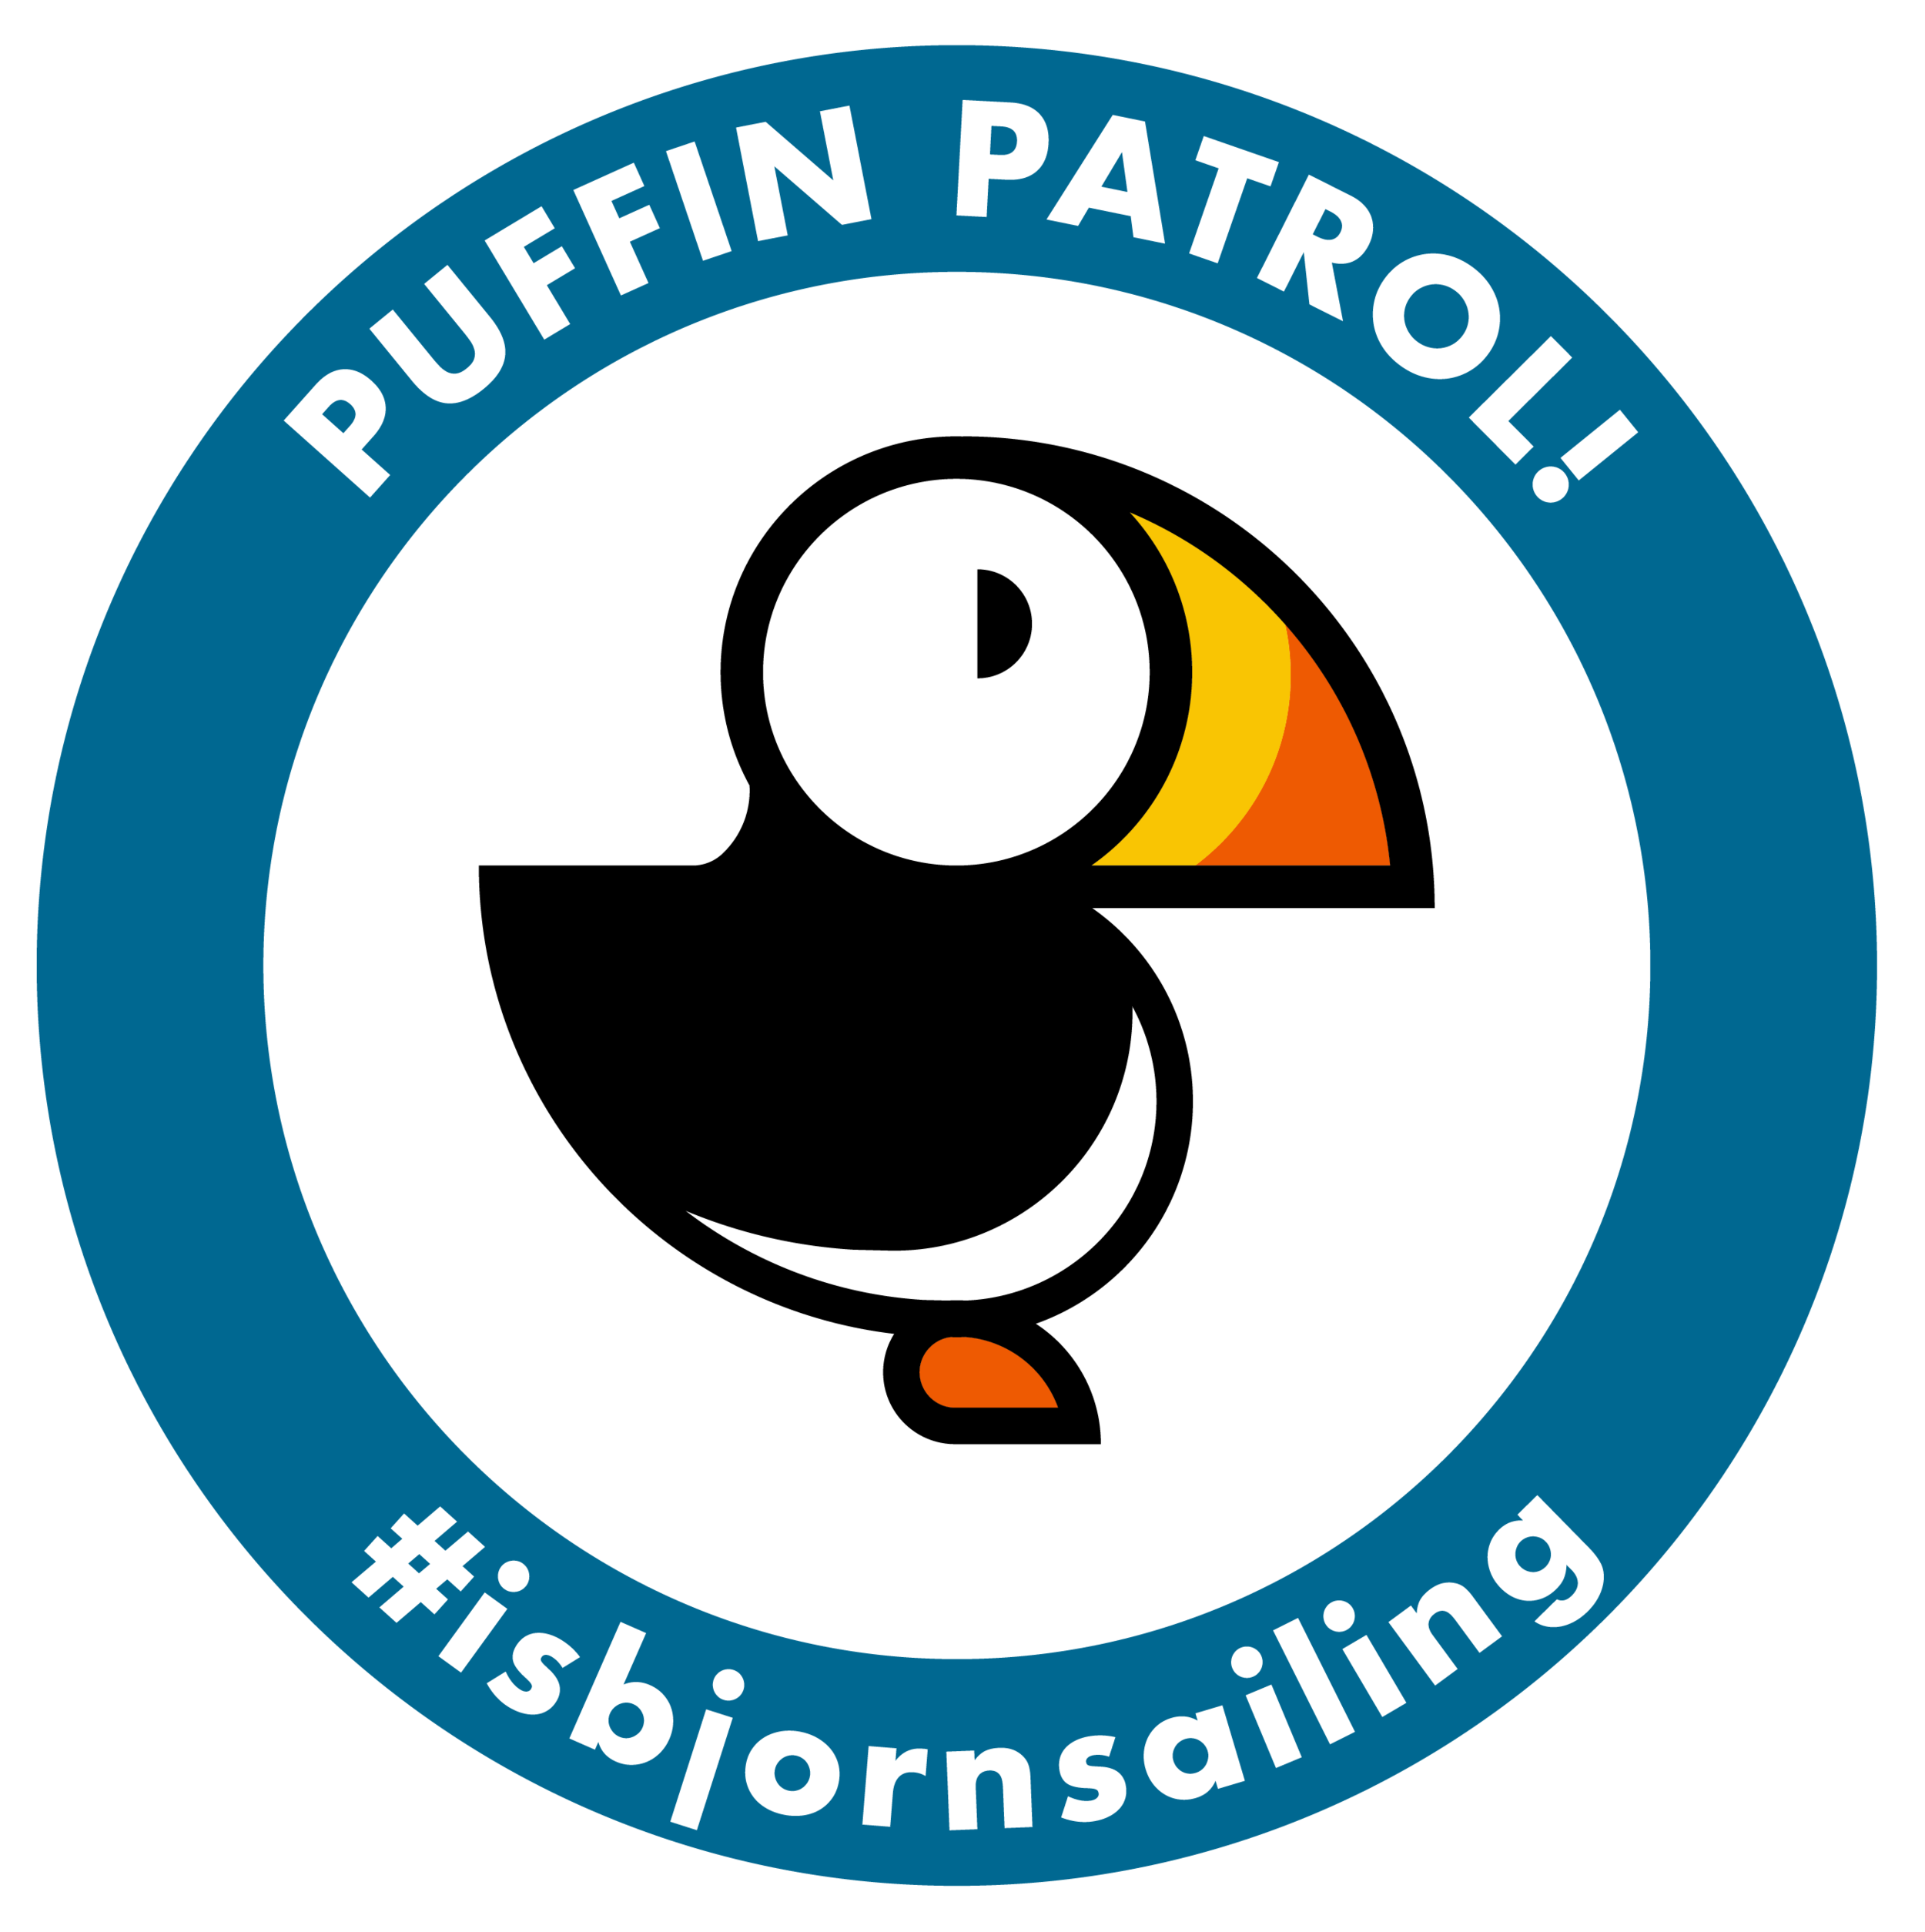 PuffinPatrol_Patch_White-01.png